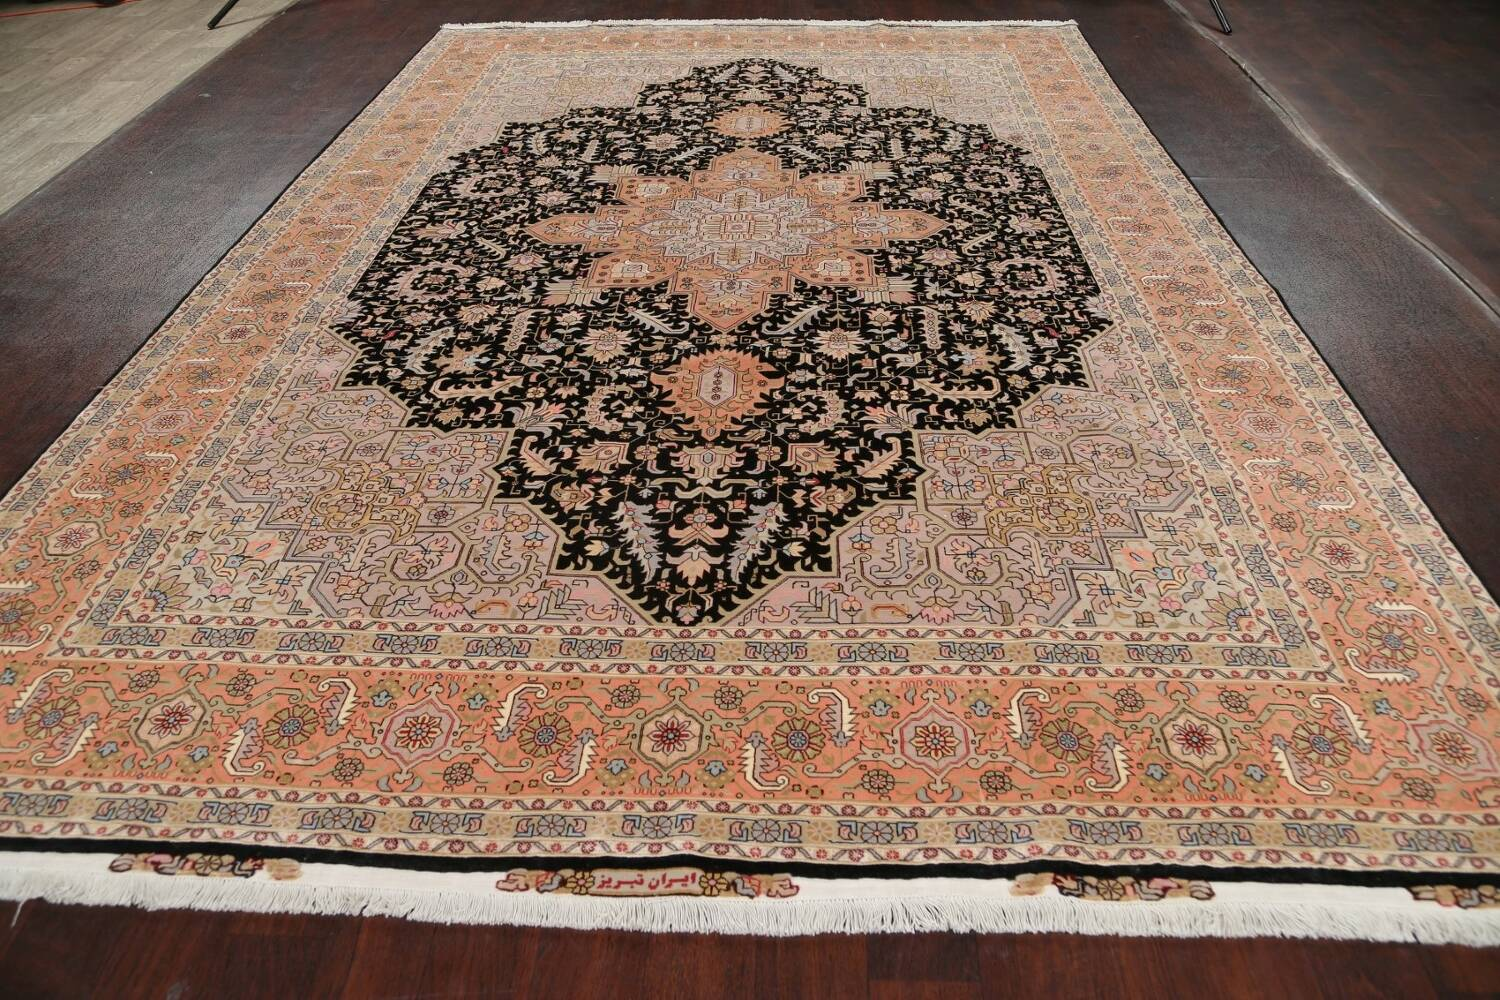 100% Vegetable Dye Tabriz Signed Persian Area Rug 8x12 image 16